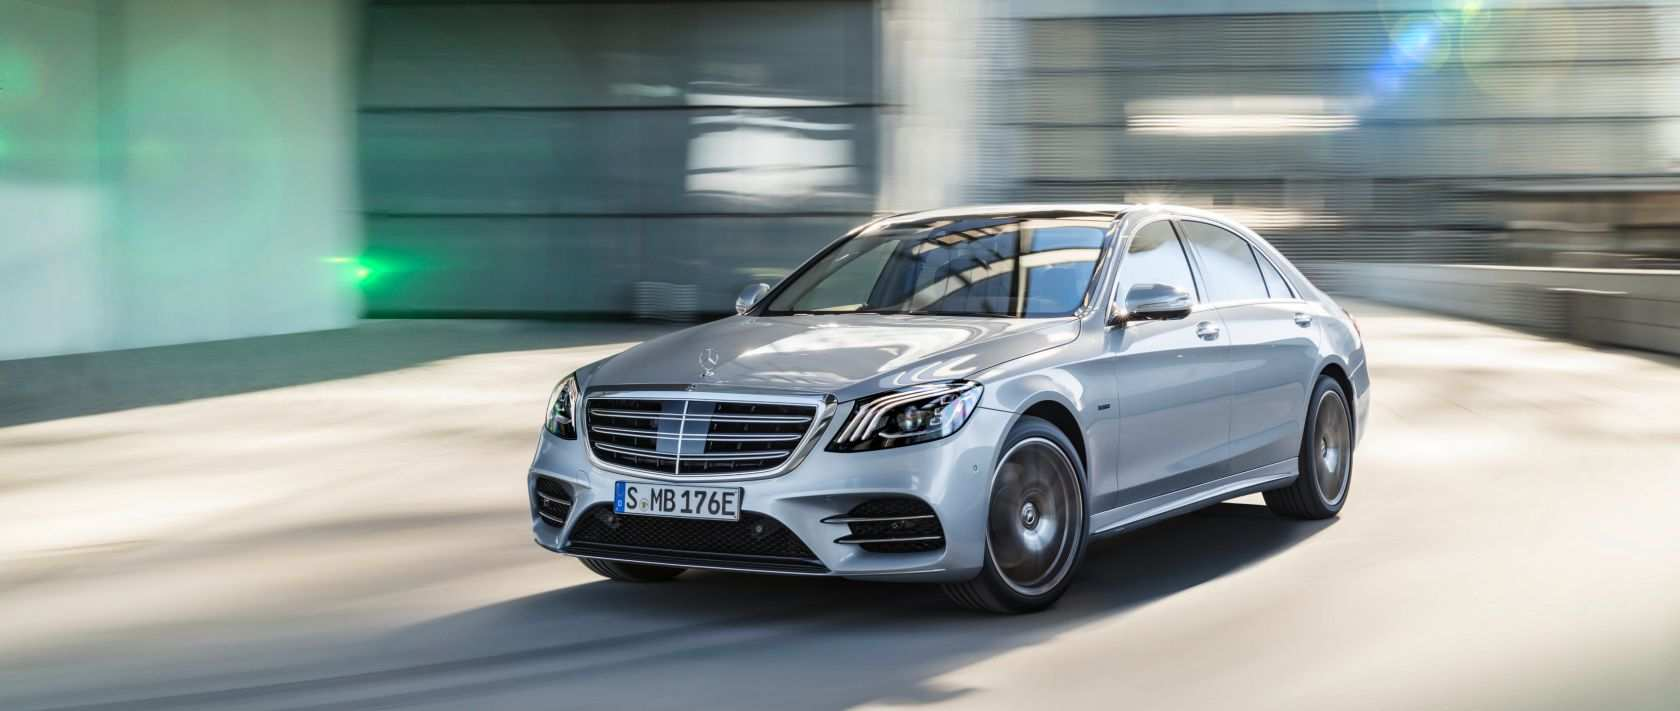 14 All New S560 Mercedes 2019 Redesign